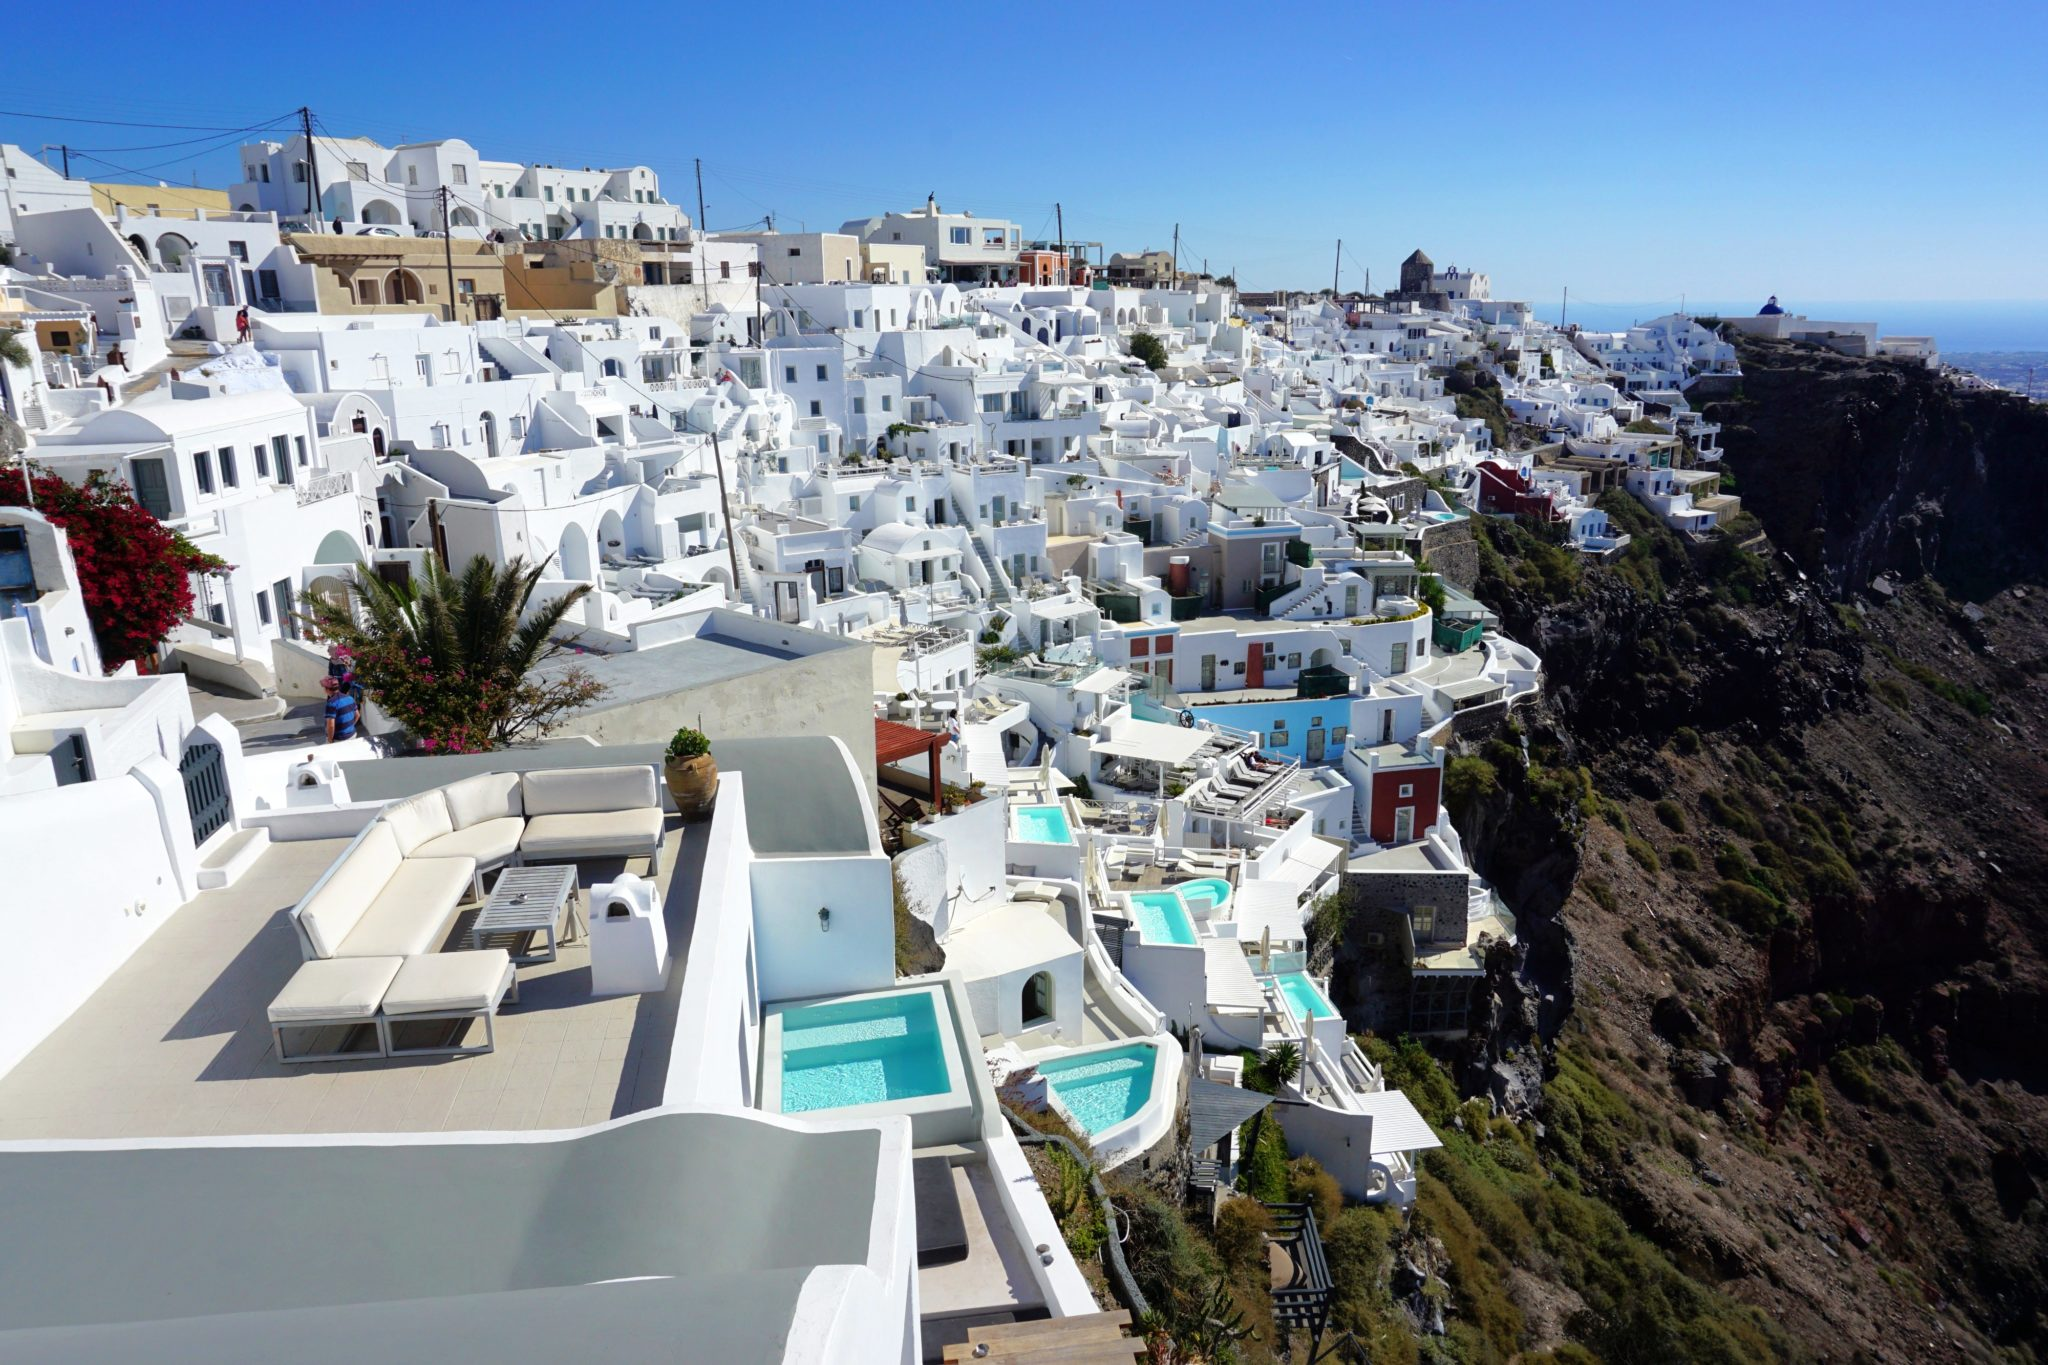 The hike from Fira to Oia goes through the village of Imerovigli.